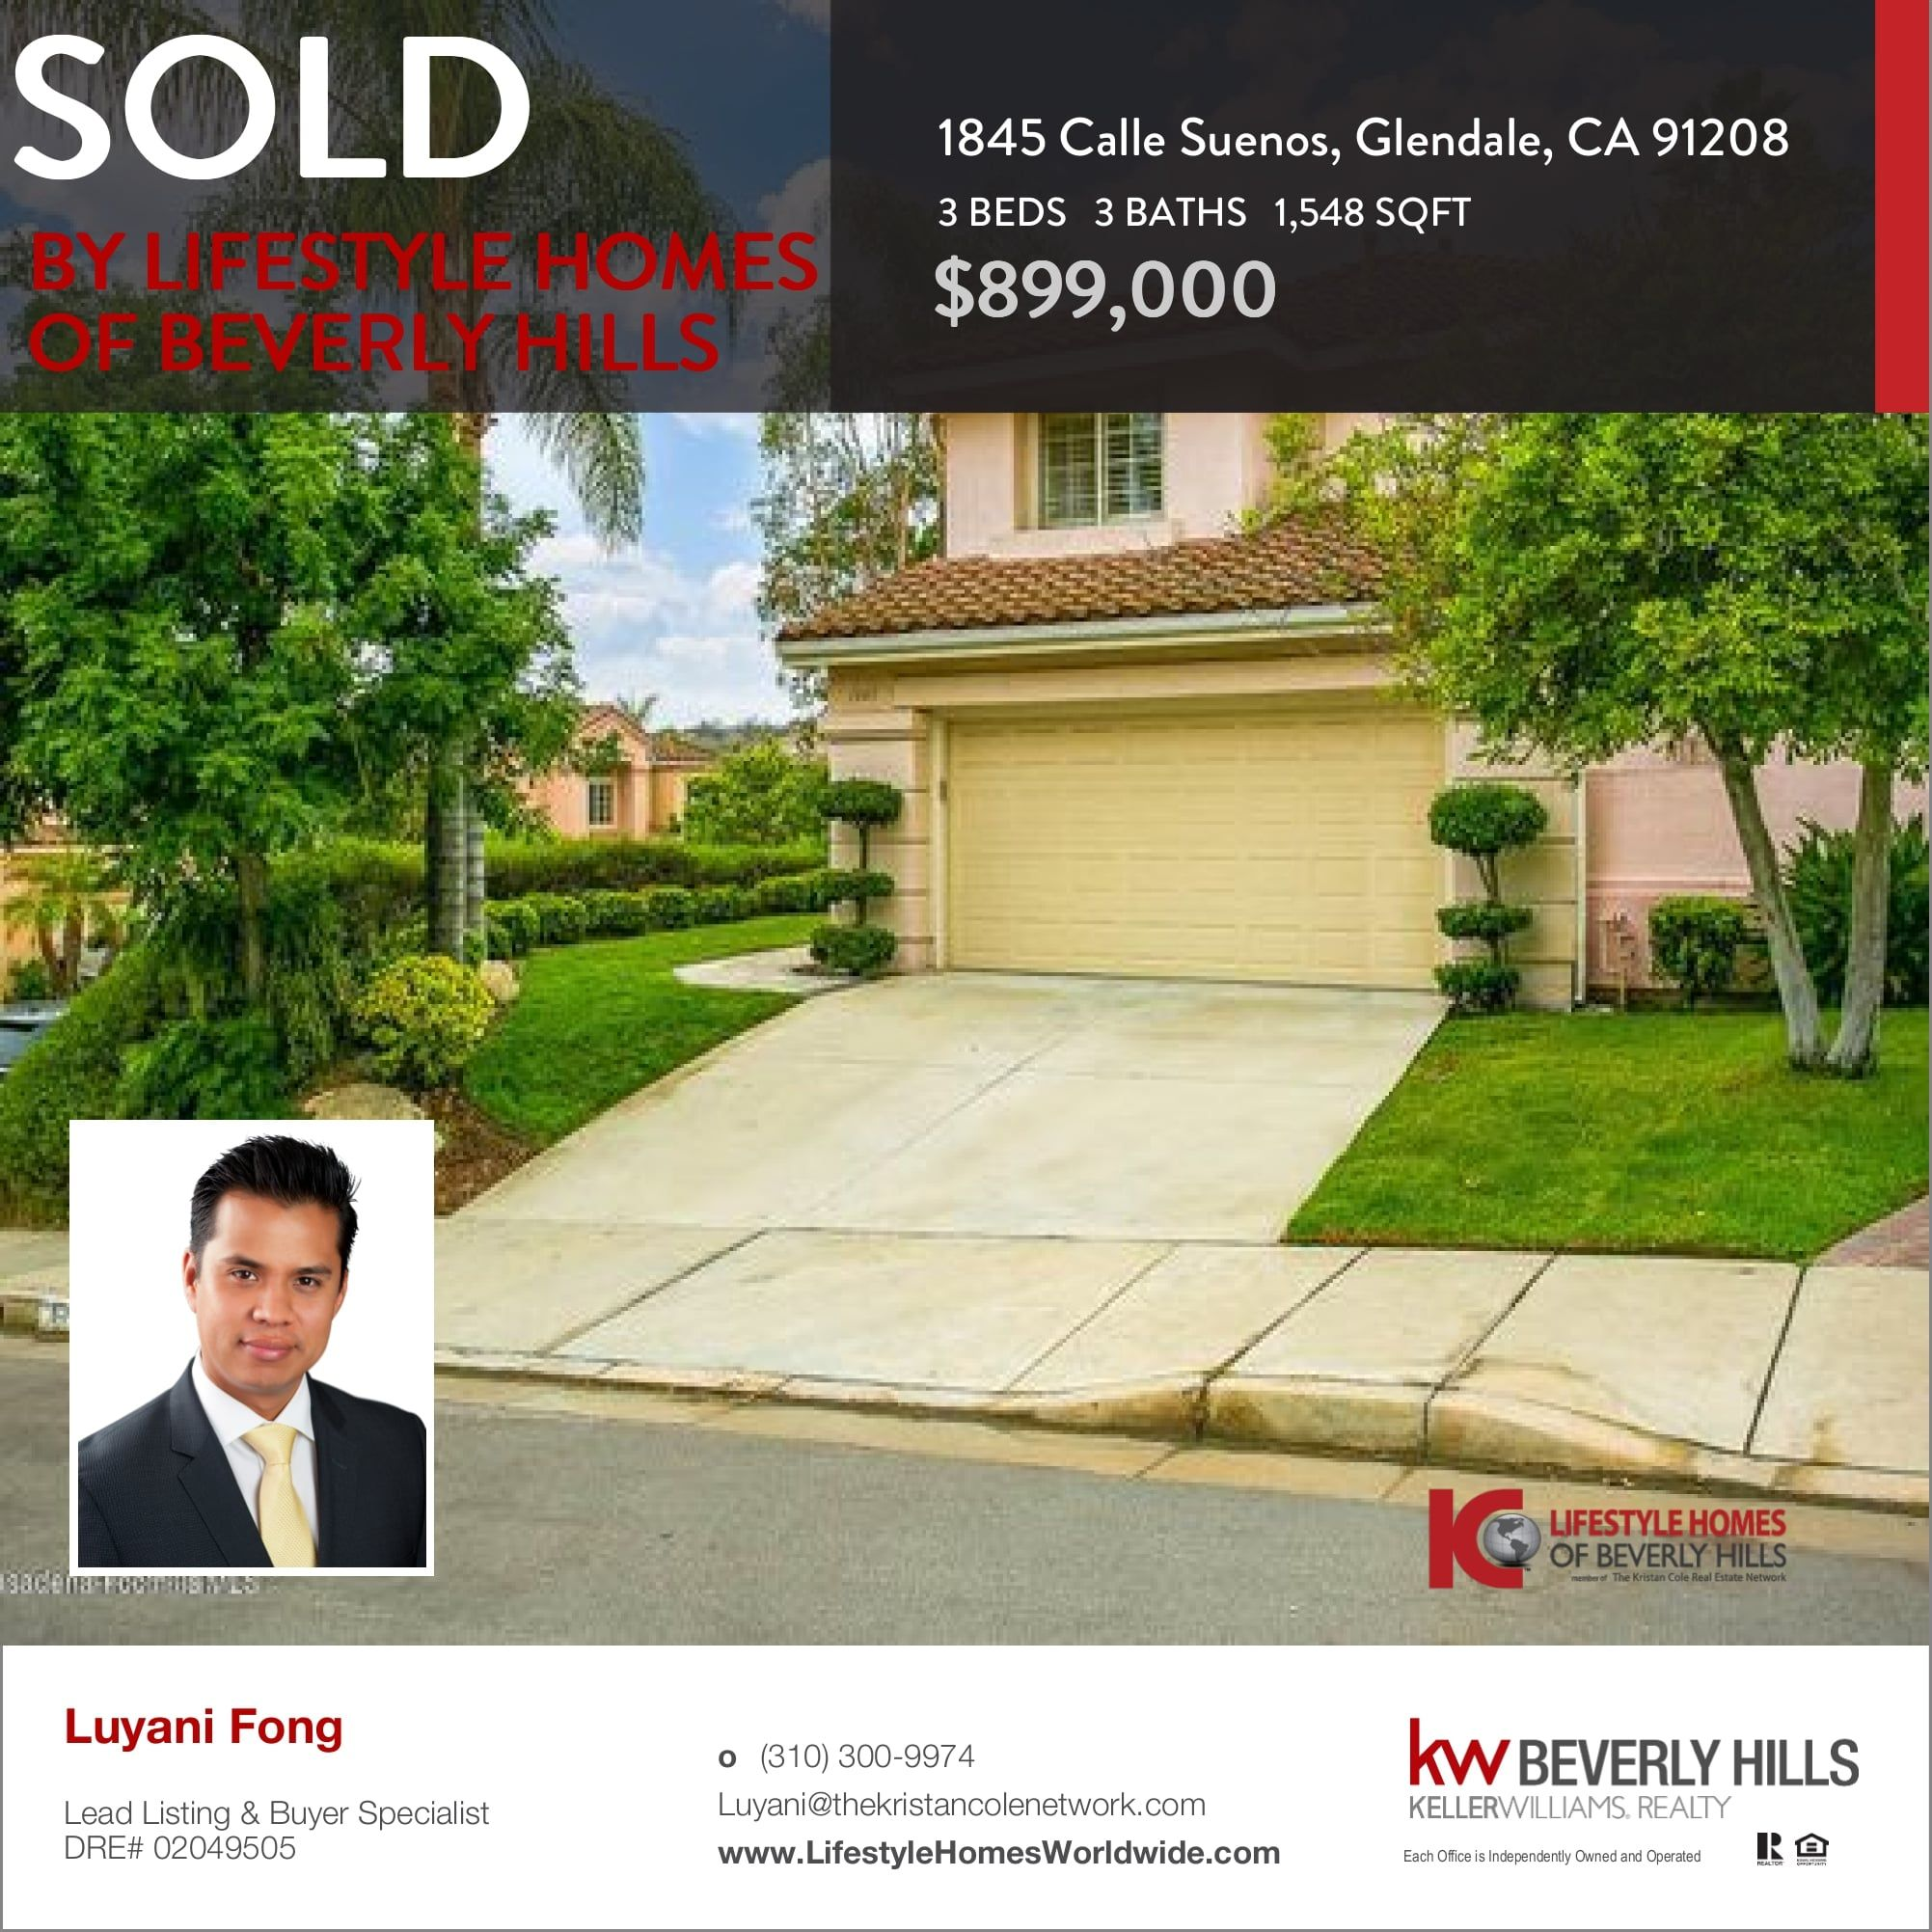 We would like to congratulate our clients the buyers of